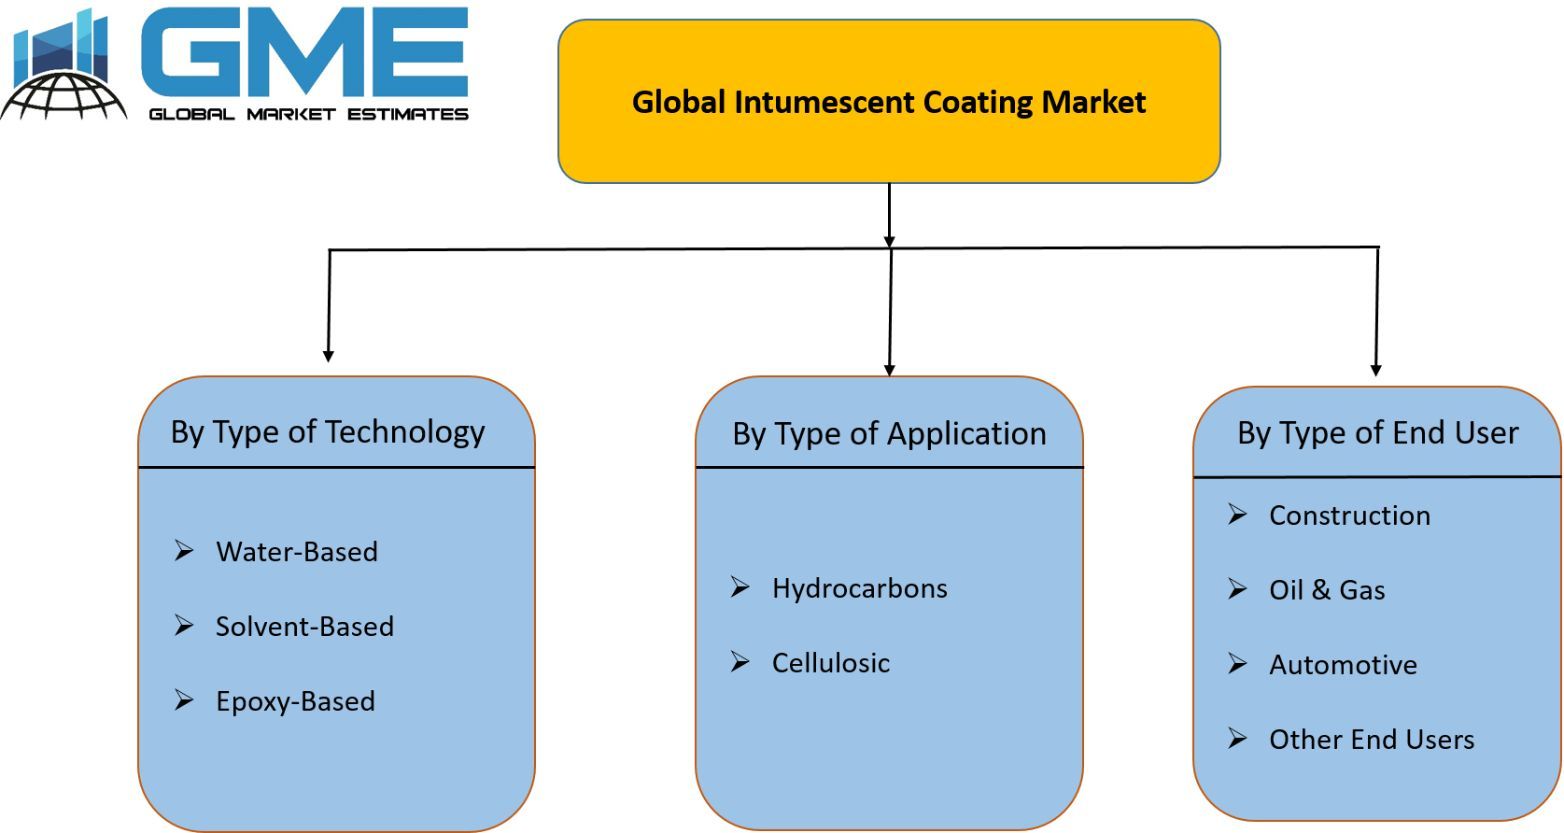 Global Intumescent Coating Market Segmentation